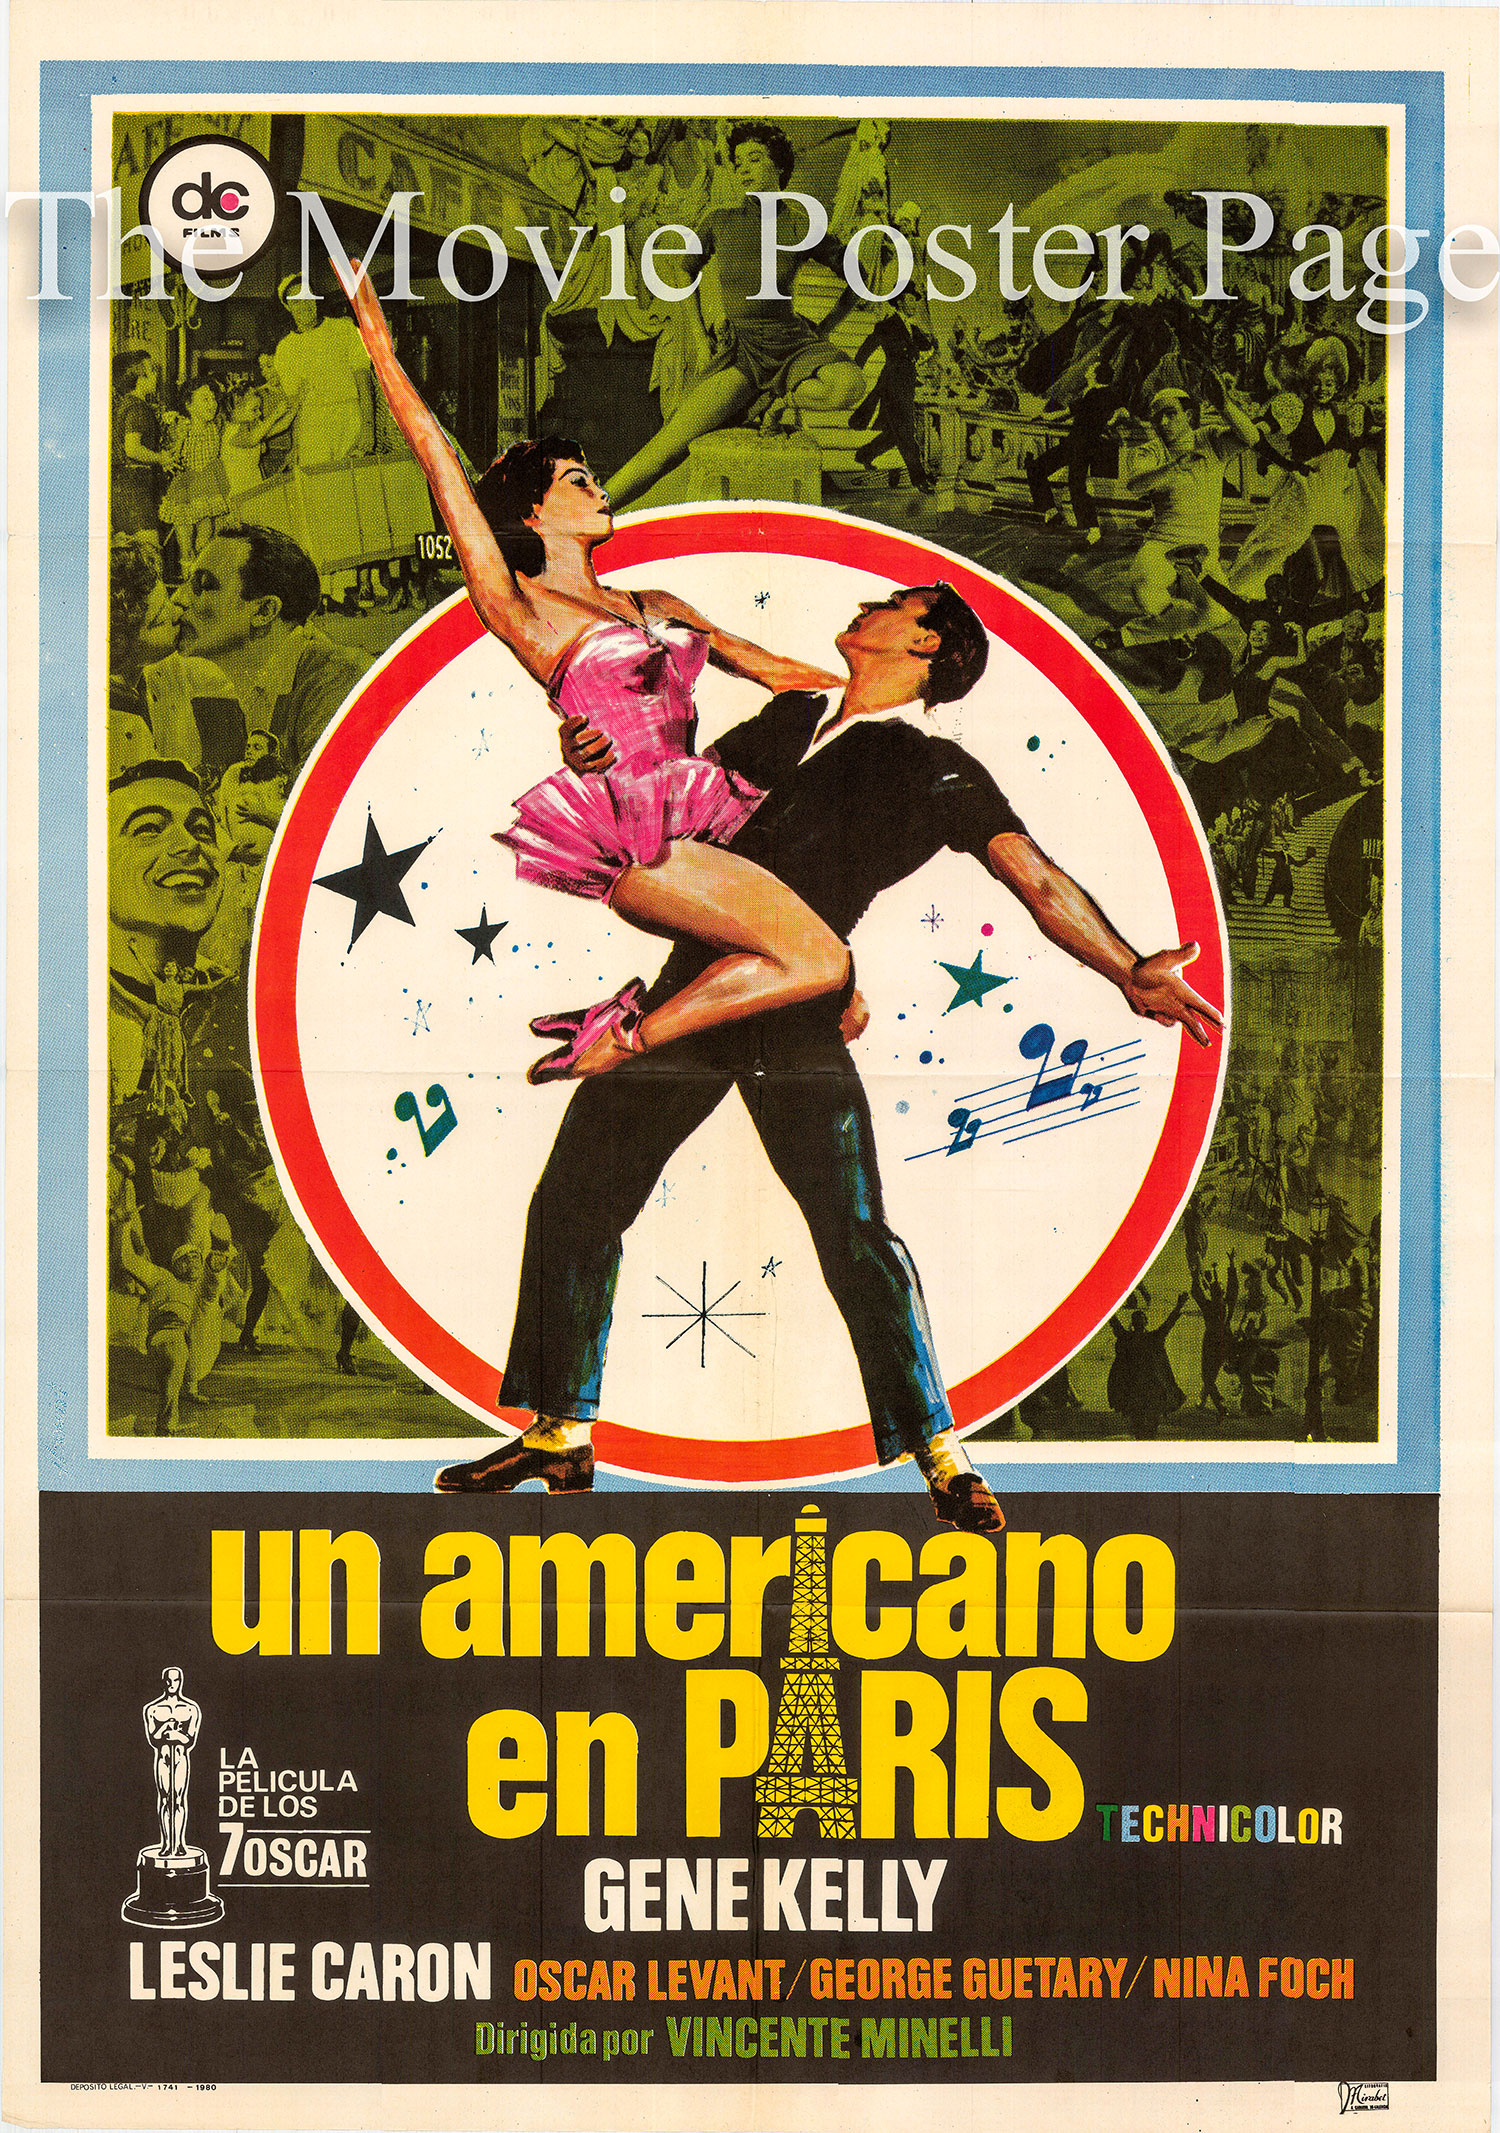 Pictured is a 1980 rerelease one-sheet for the 1951 Vincenet Minelli film An American in Paris starring Gene Kelly.